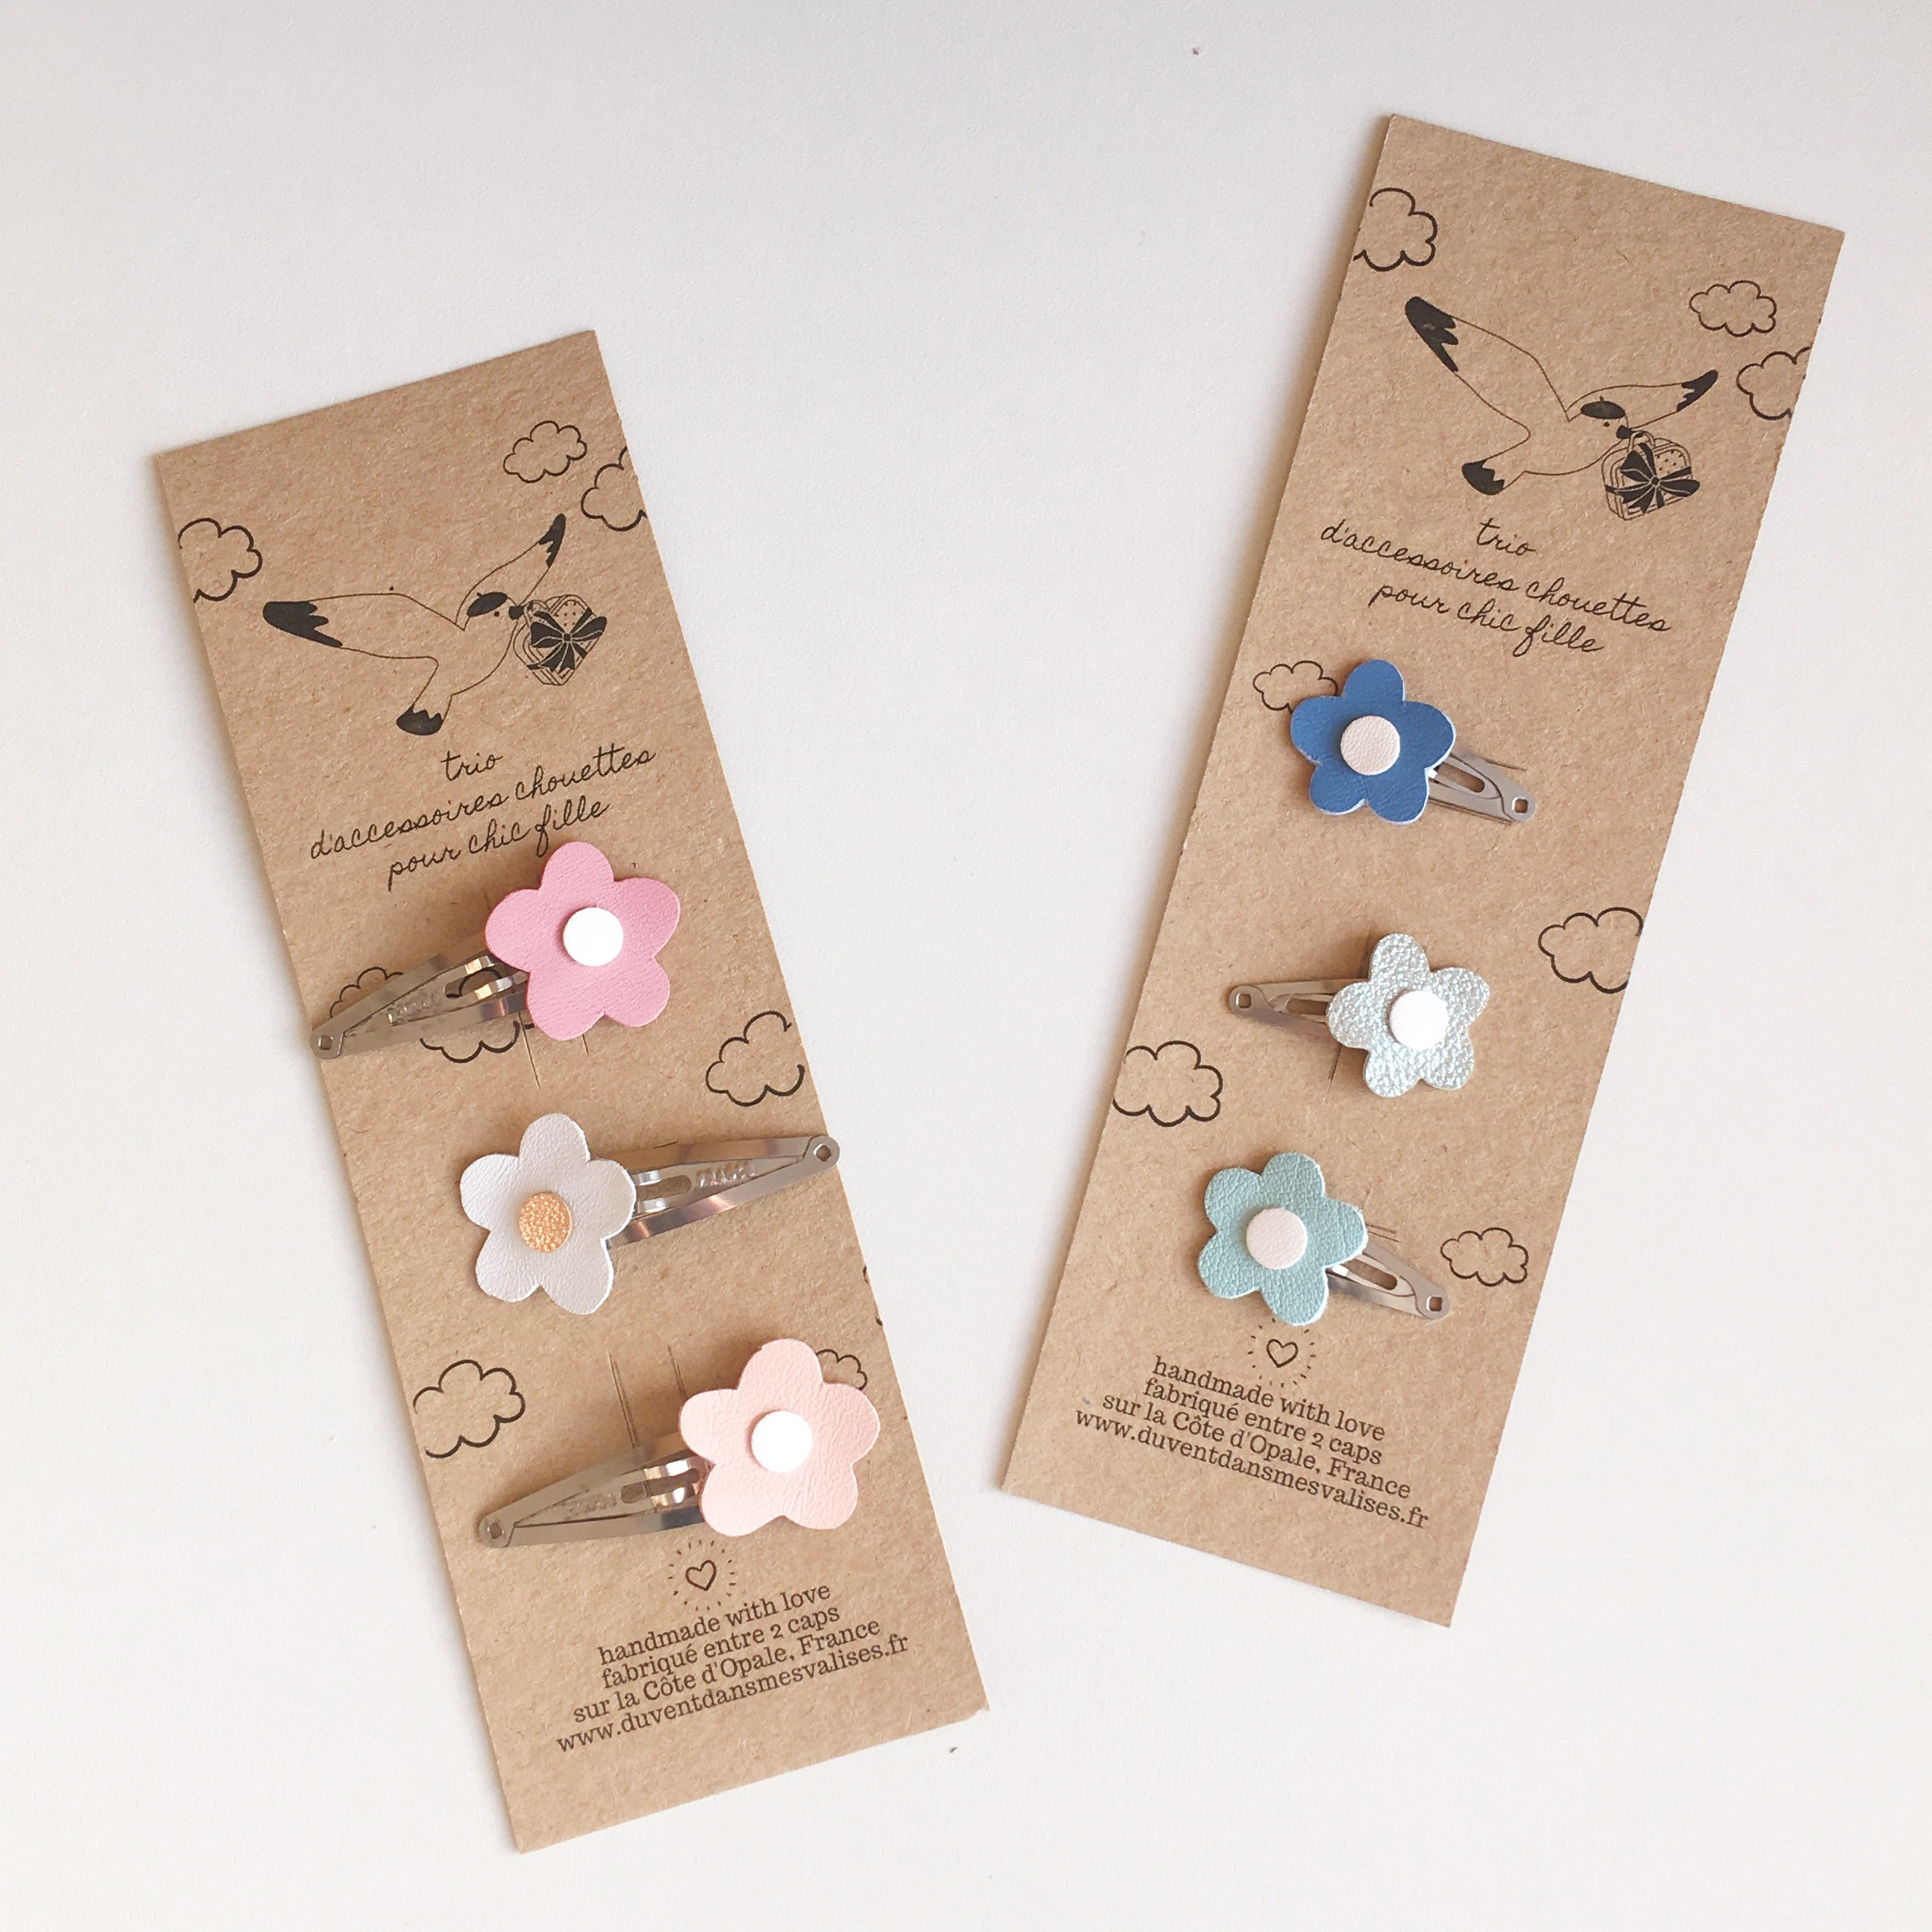 trio de barrettes made in france fabrication artisanale cuir durable upcycled ecofriendly blanc or rose - du vent dans mes valises